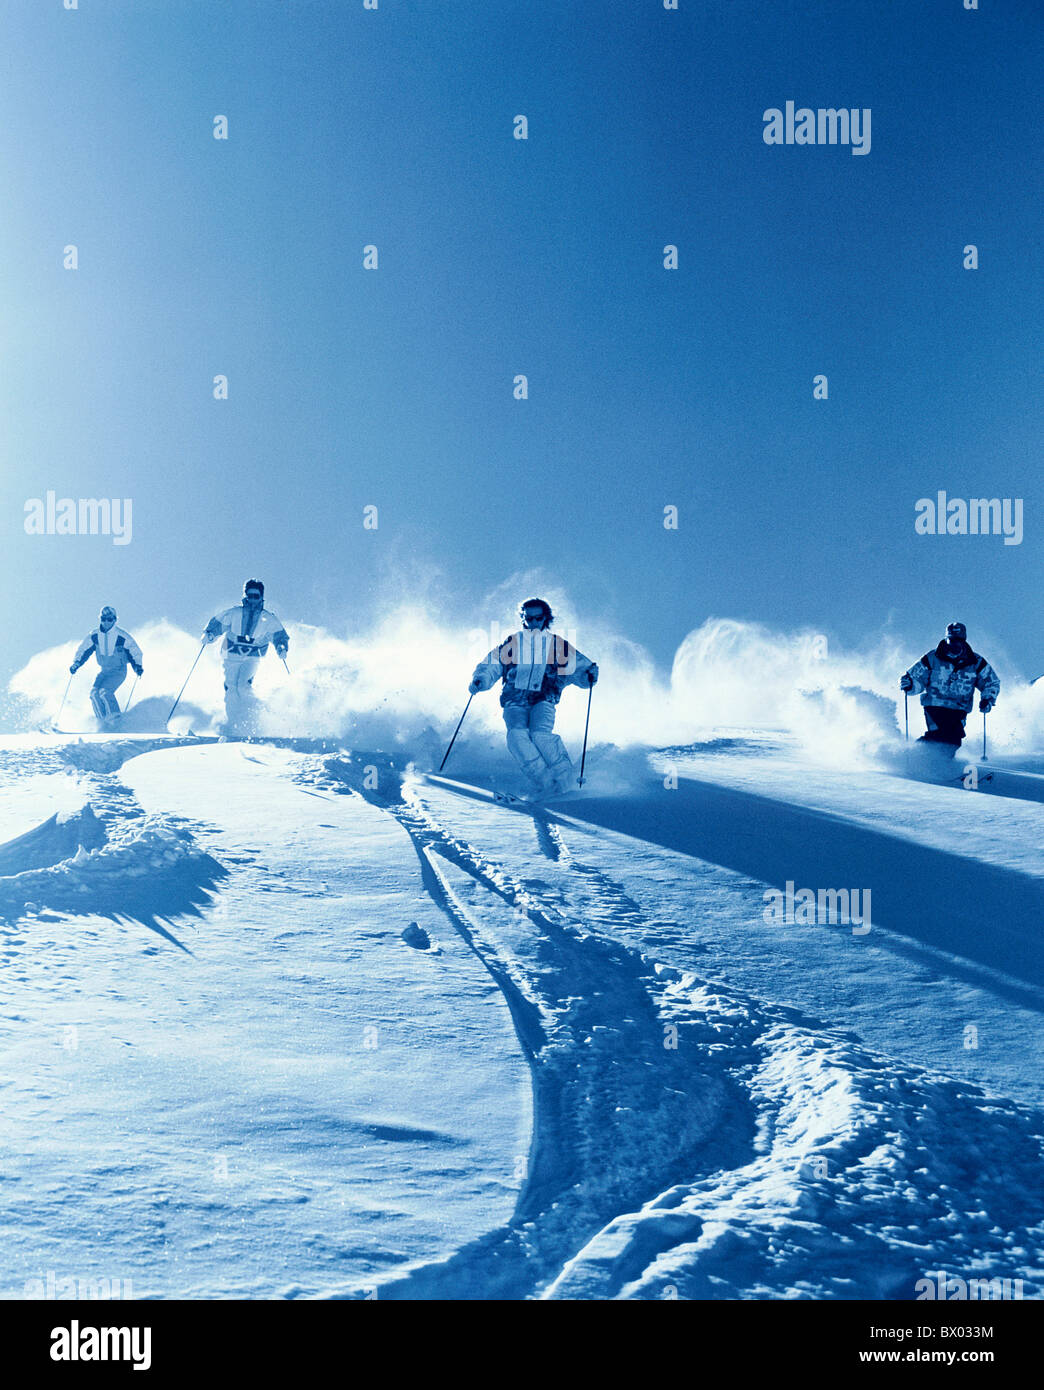 mountains Carving ski group monochrome snow ski skiing sport deep snow deep snow driving winter winter s - Stock Image